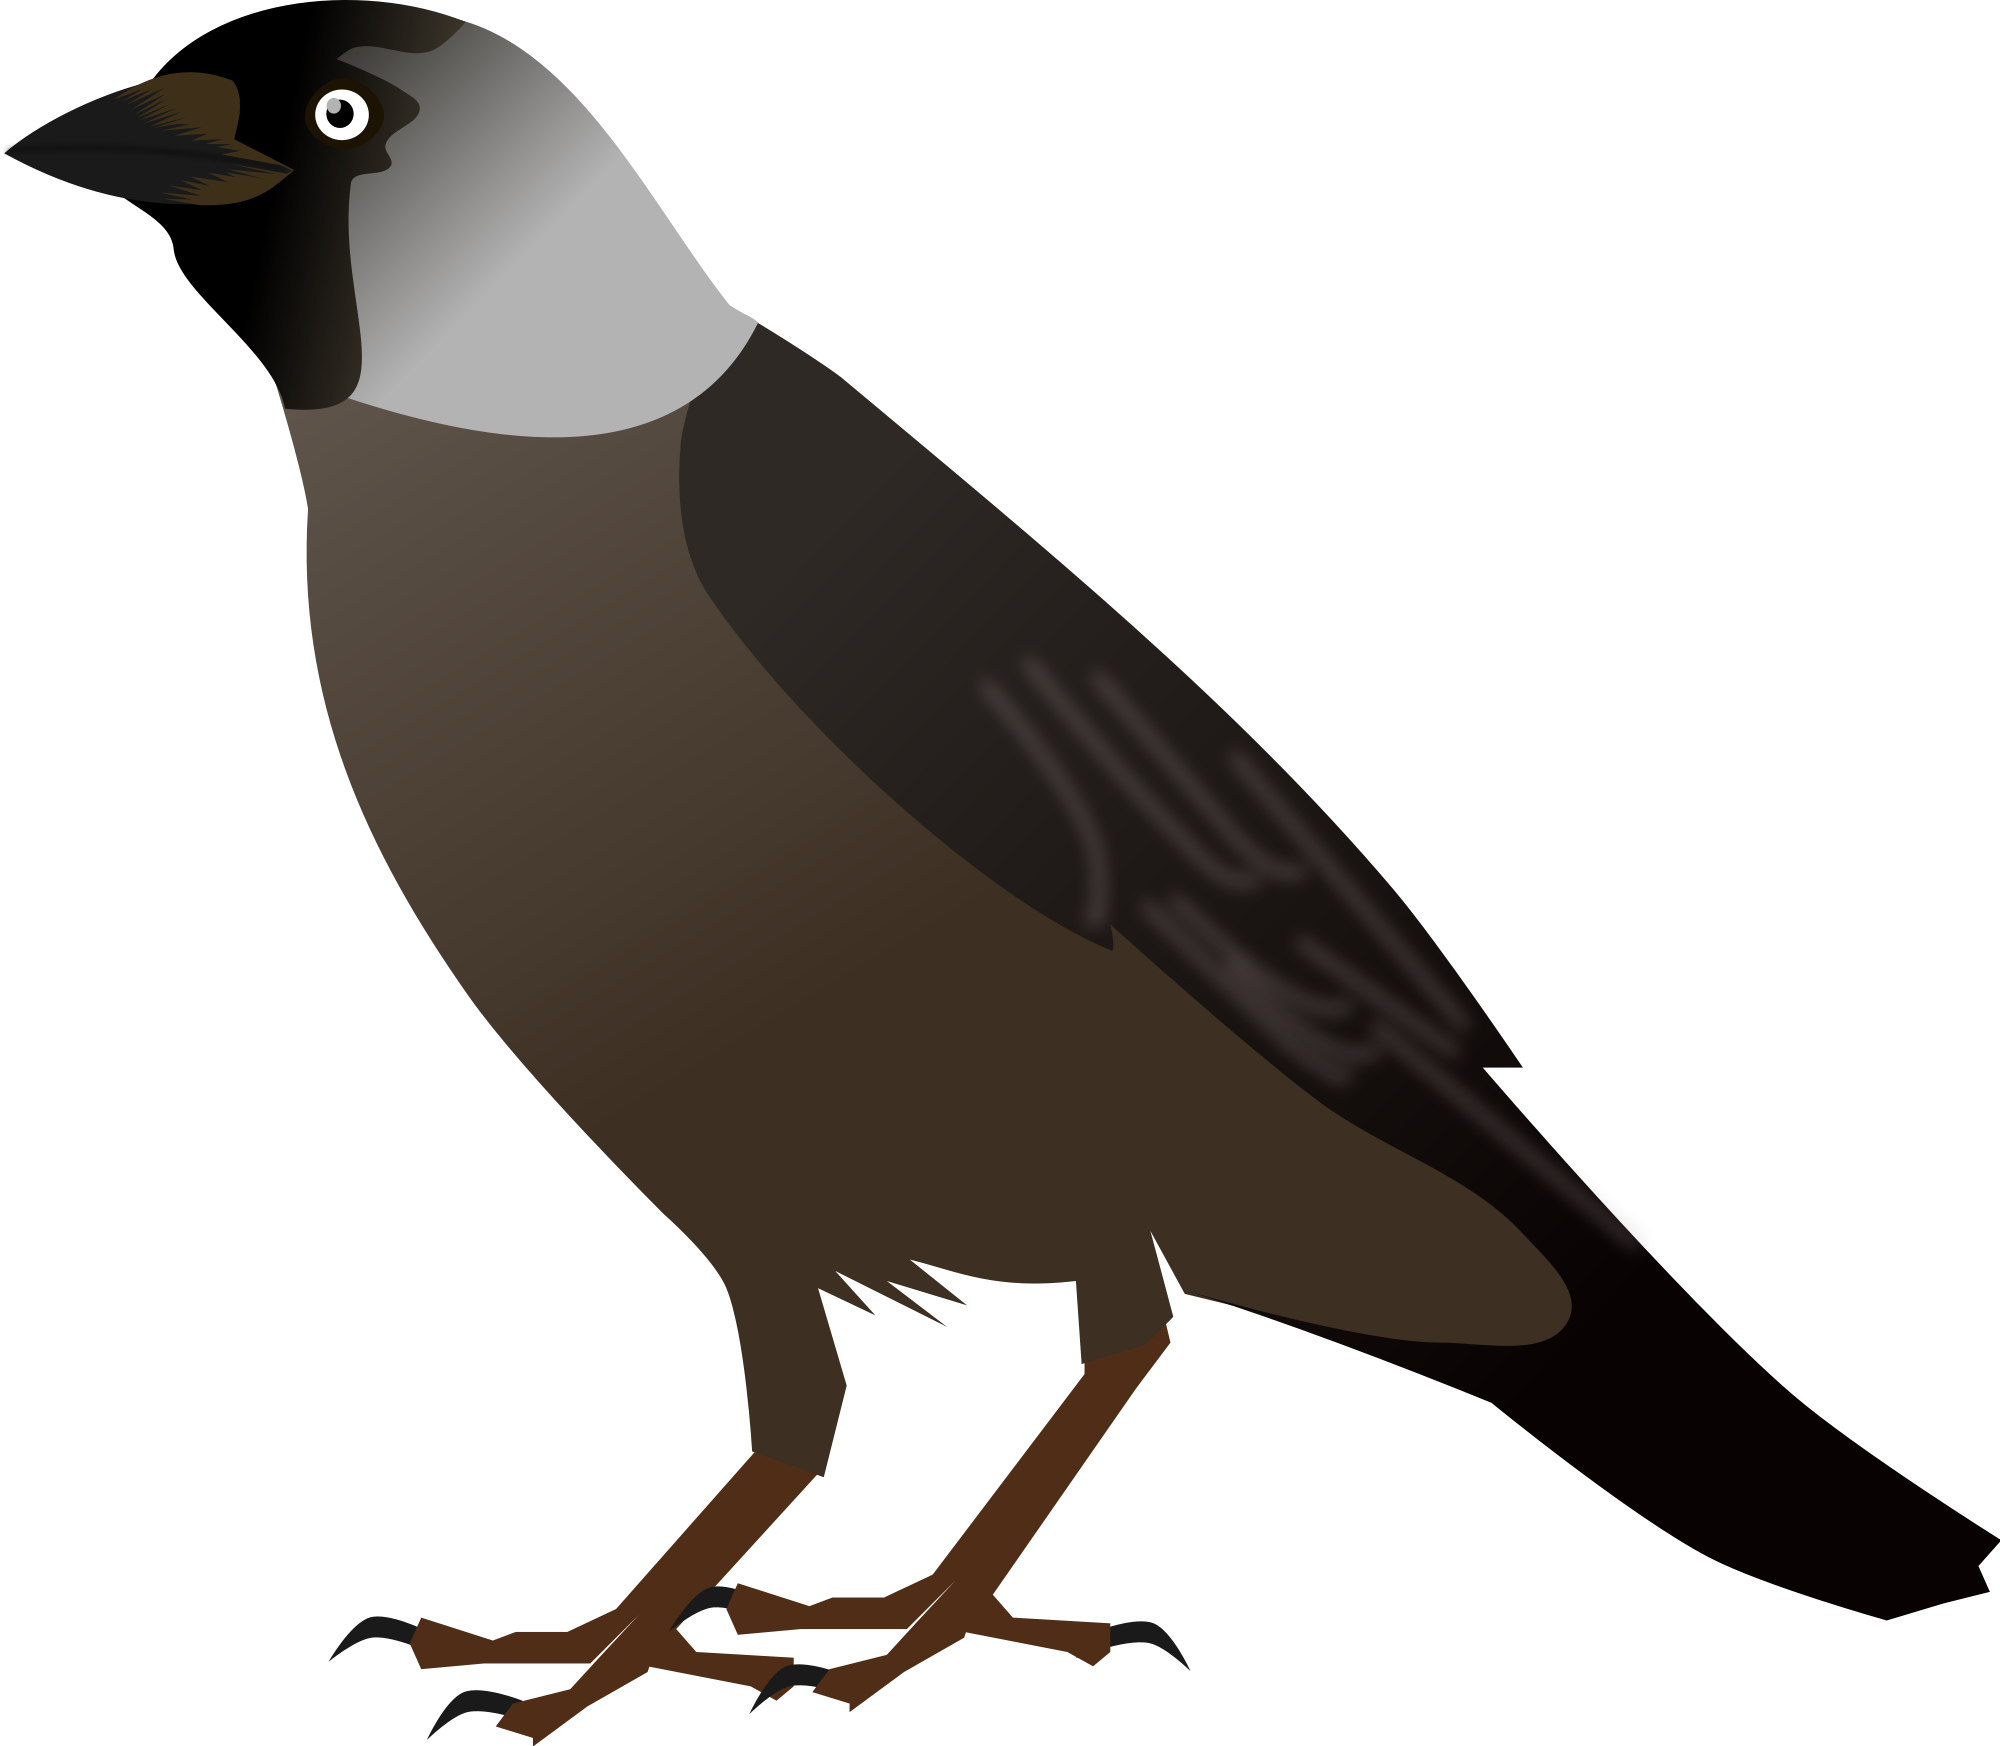 Koyal bird clipart.